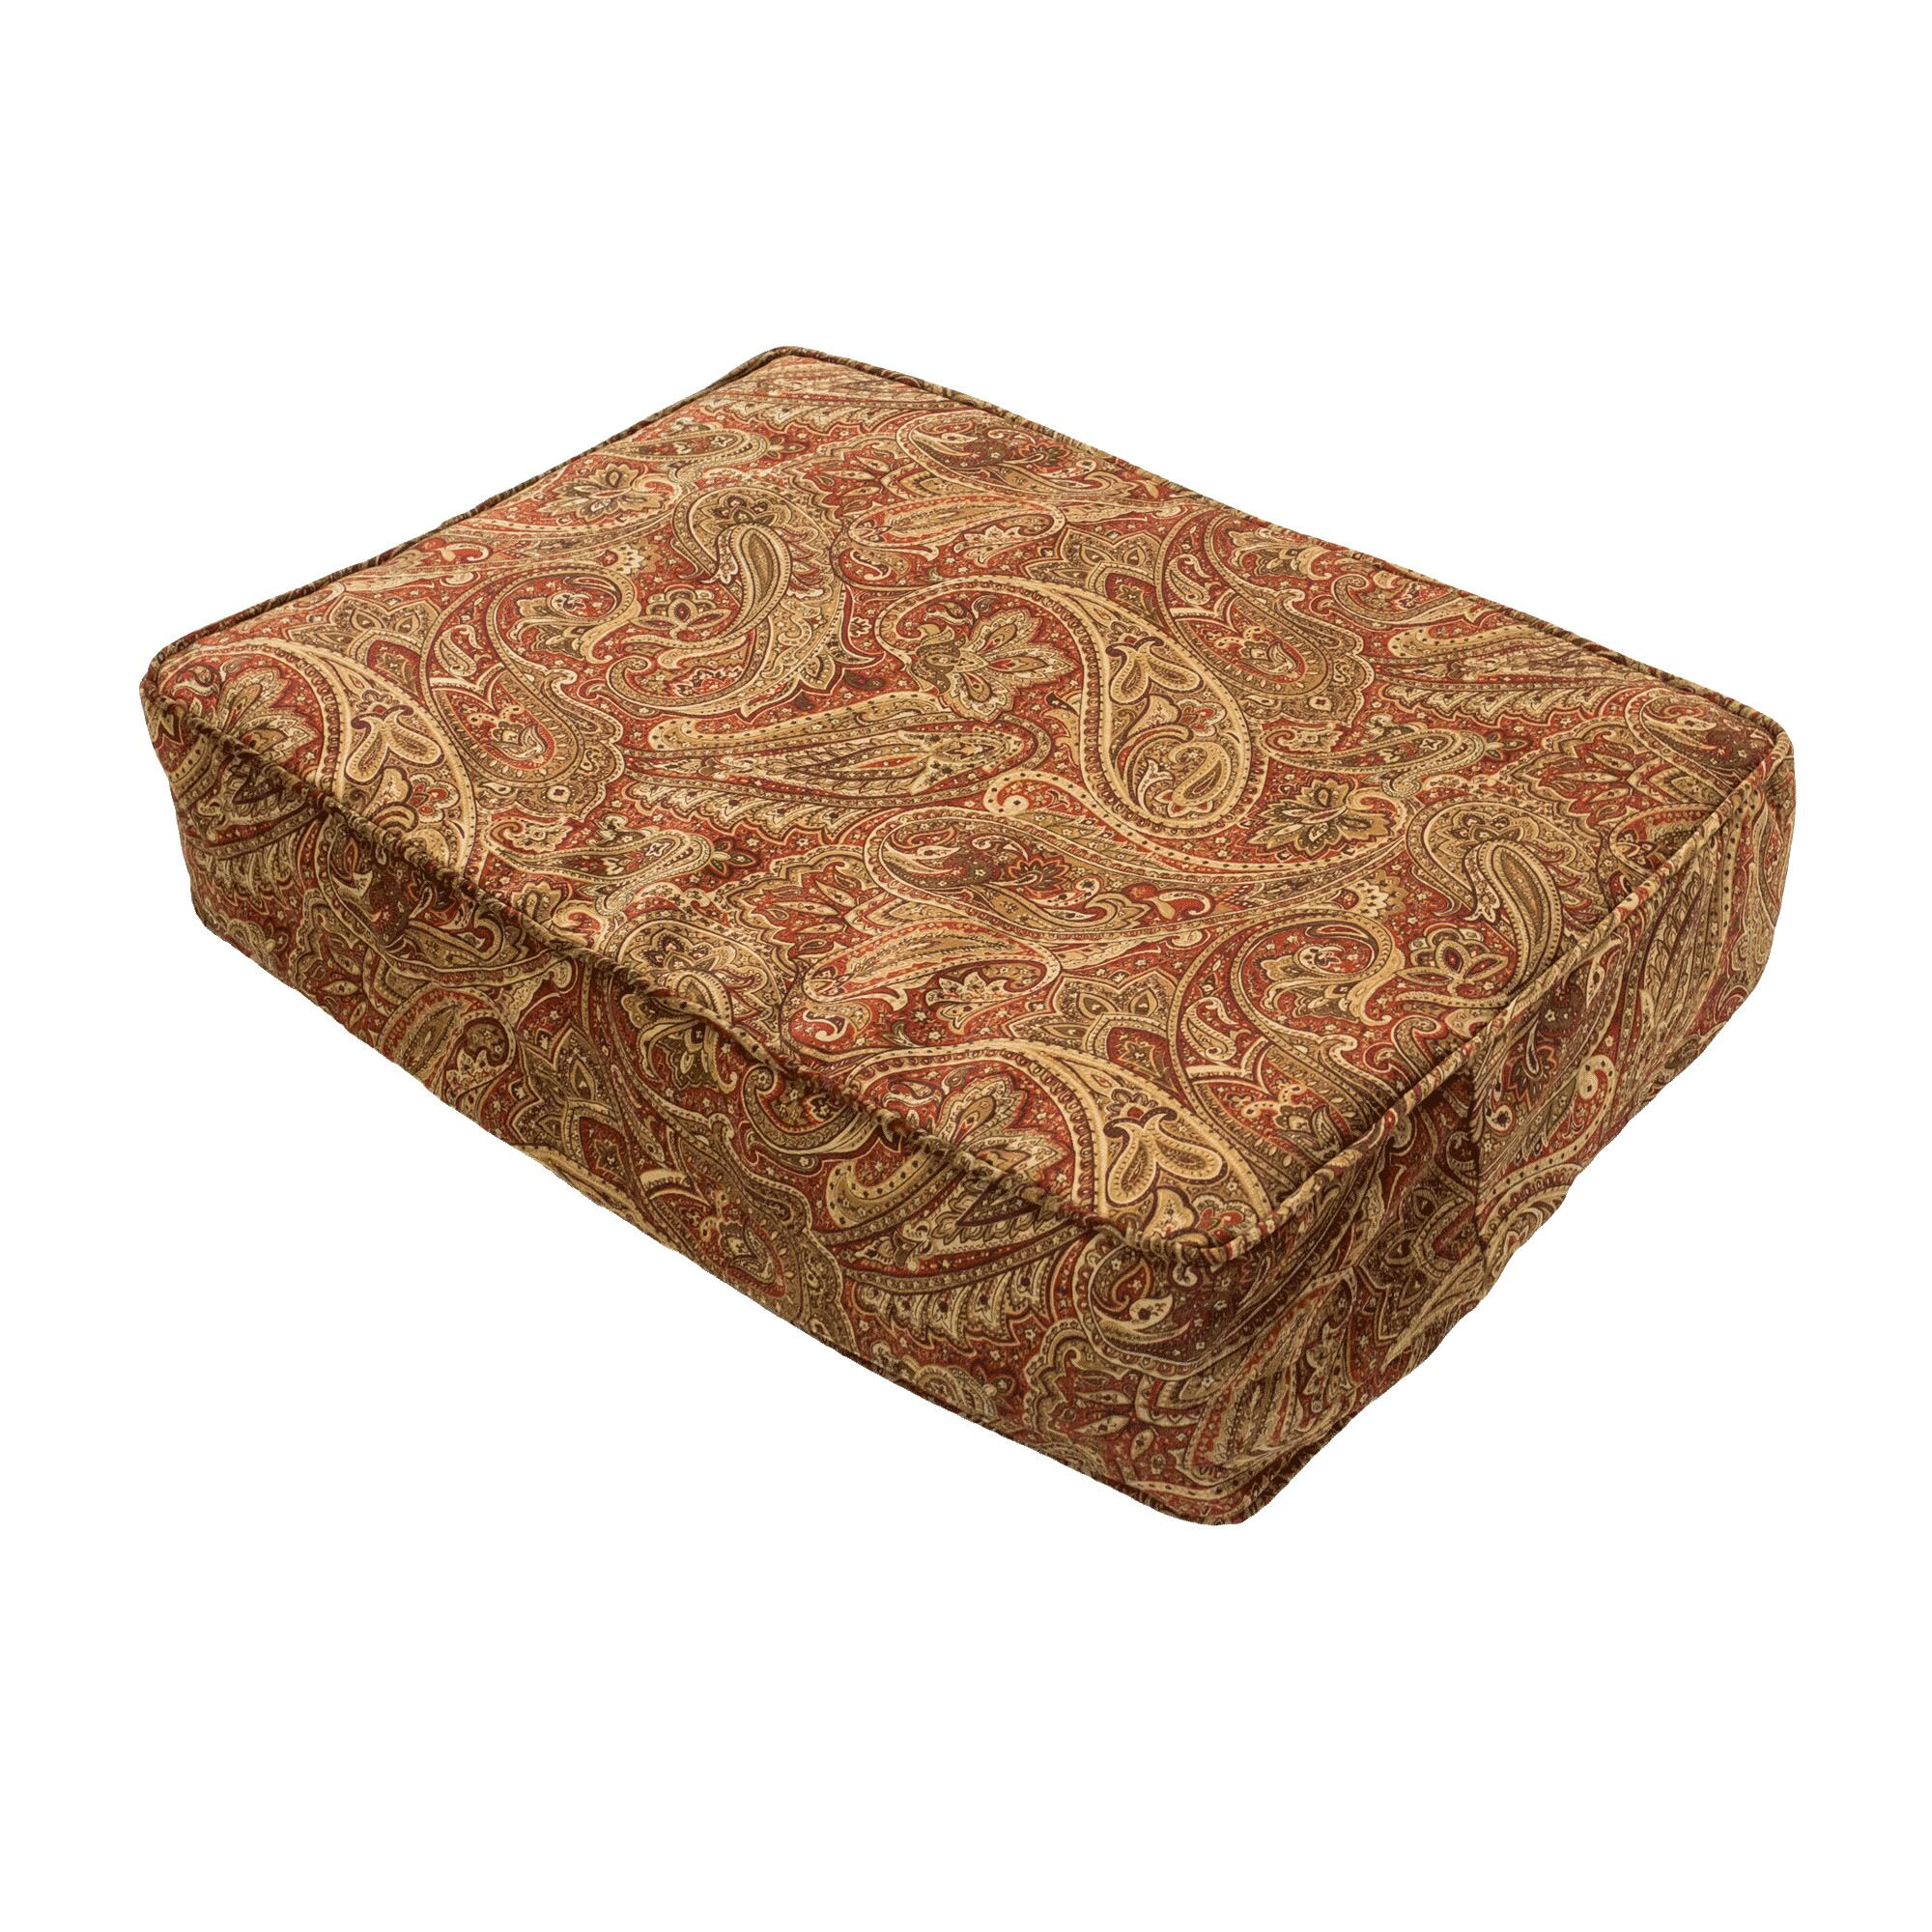 Show Dog Outlast� Heating and Cooling Dog Bed Color: Laurel Cayenne, Size: Medium (26